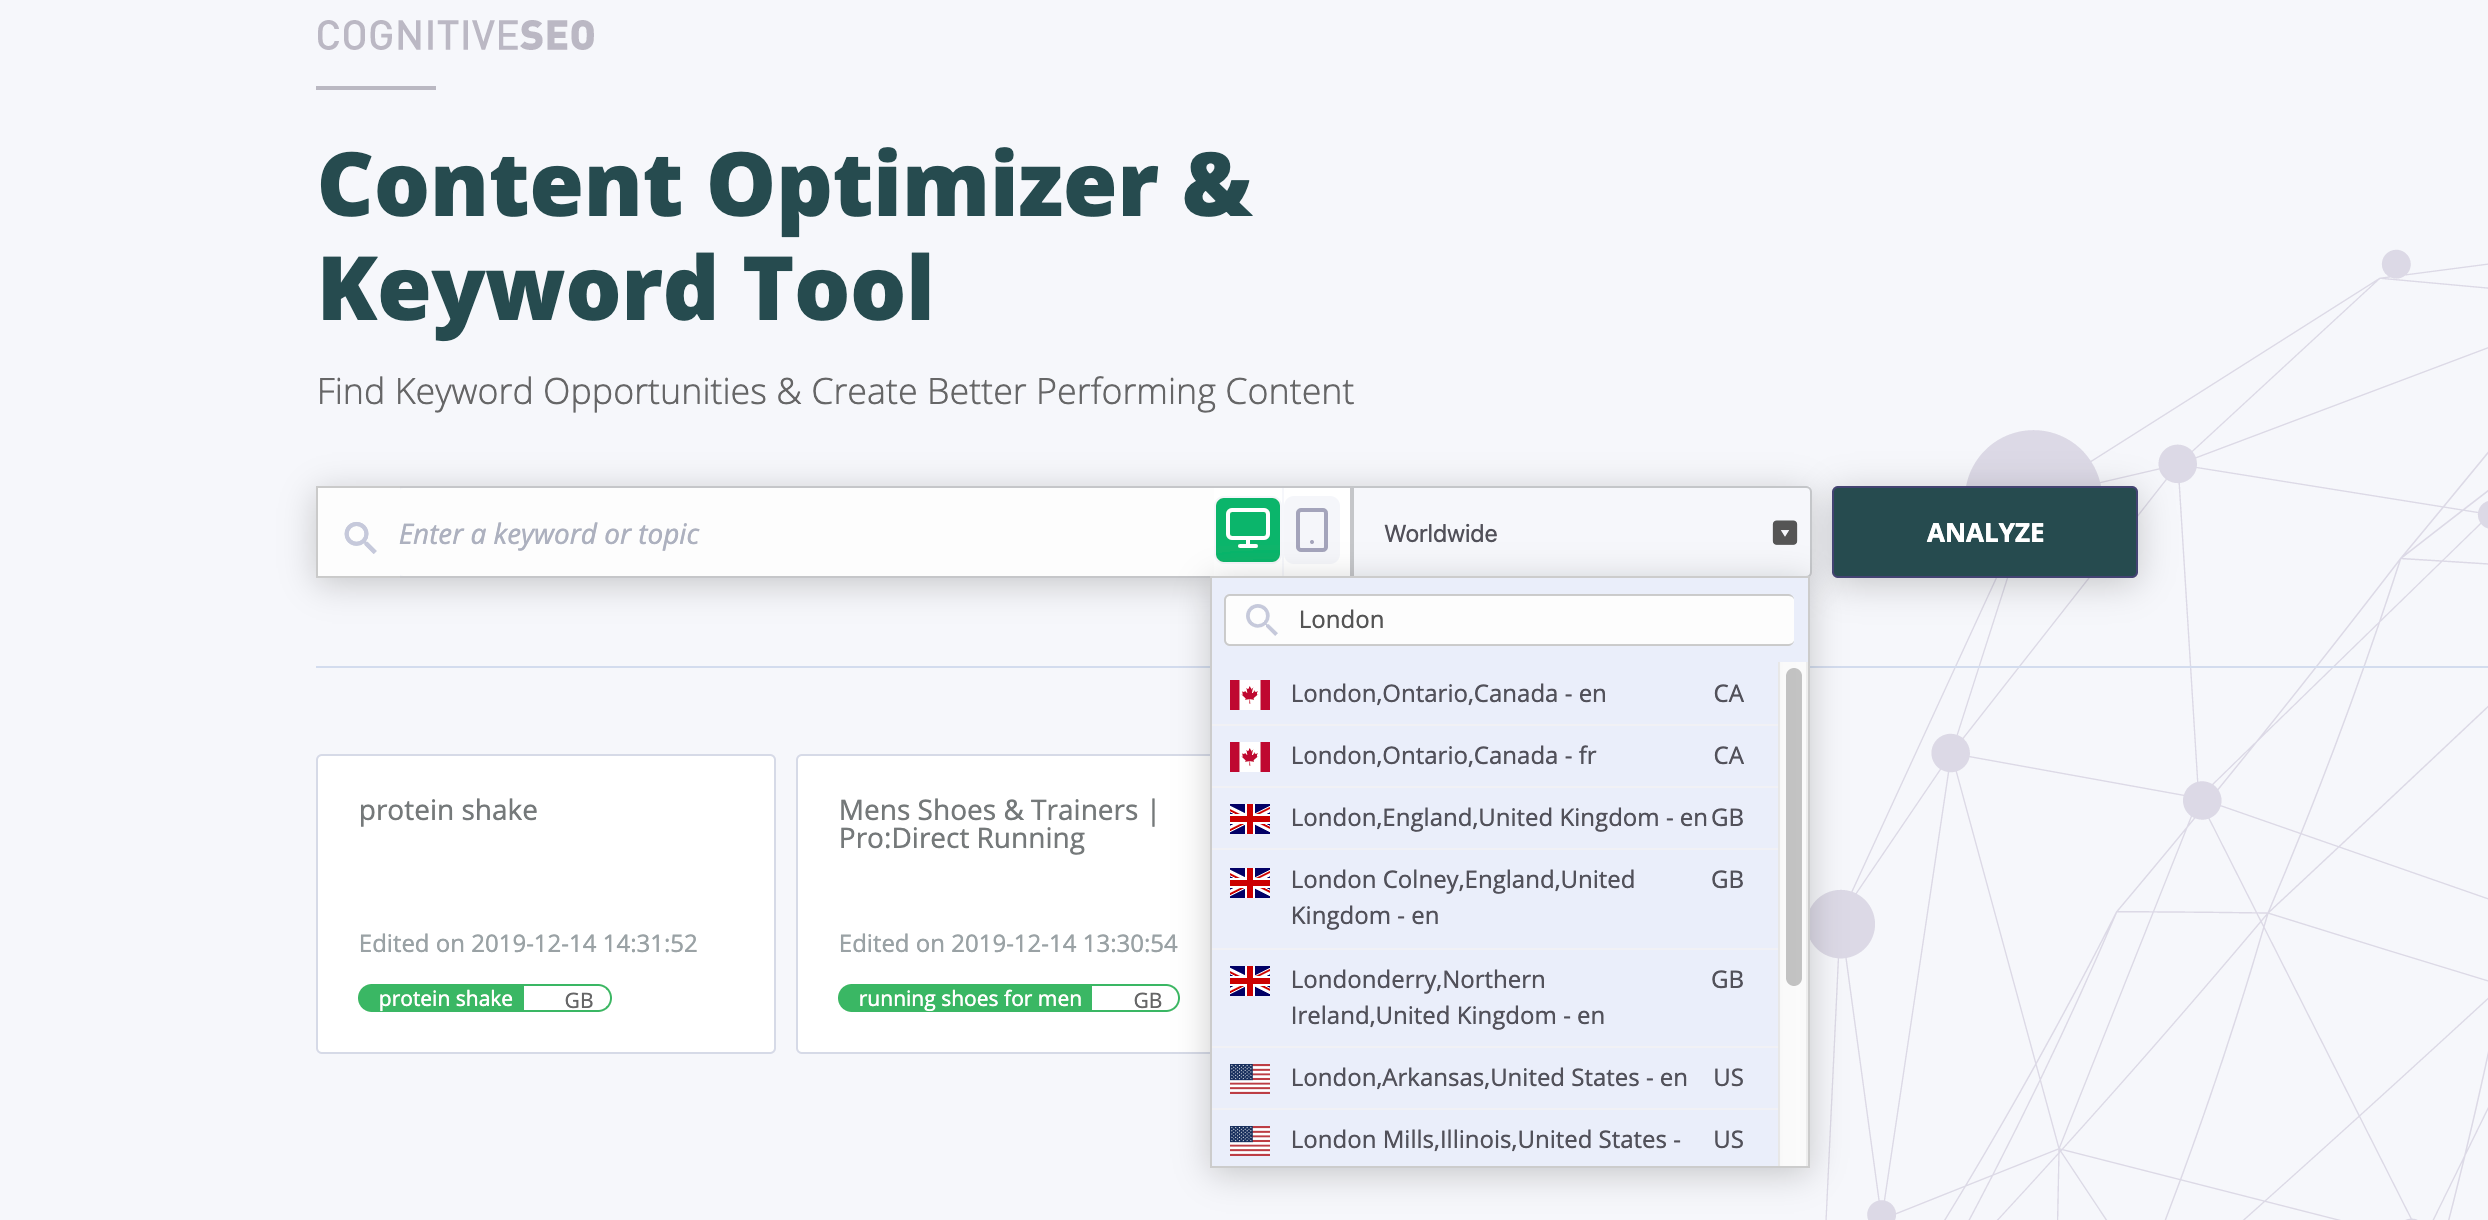 Content Optimizer & Keyword Tool